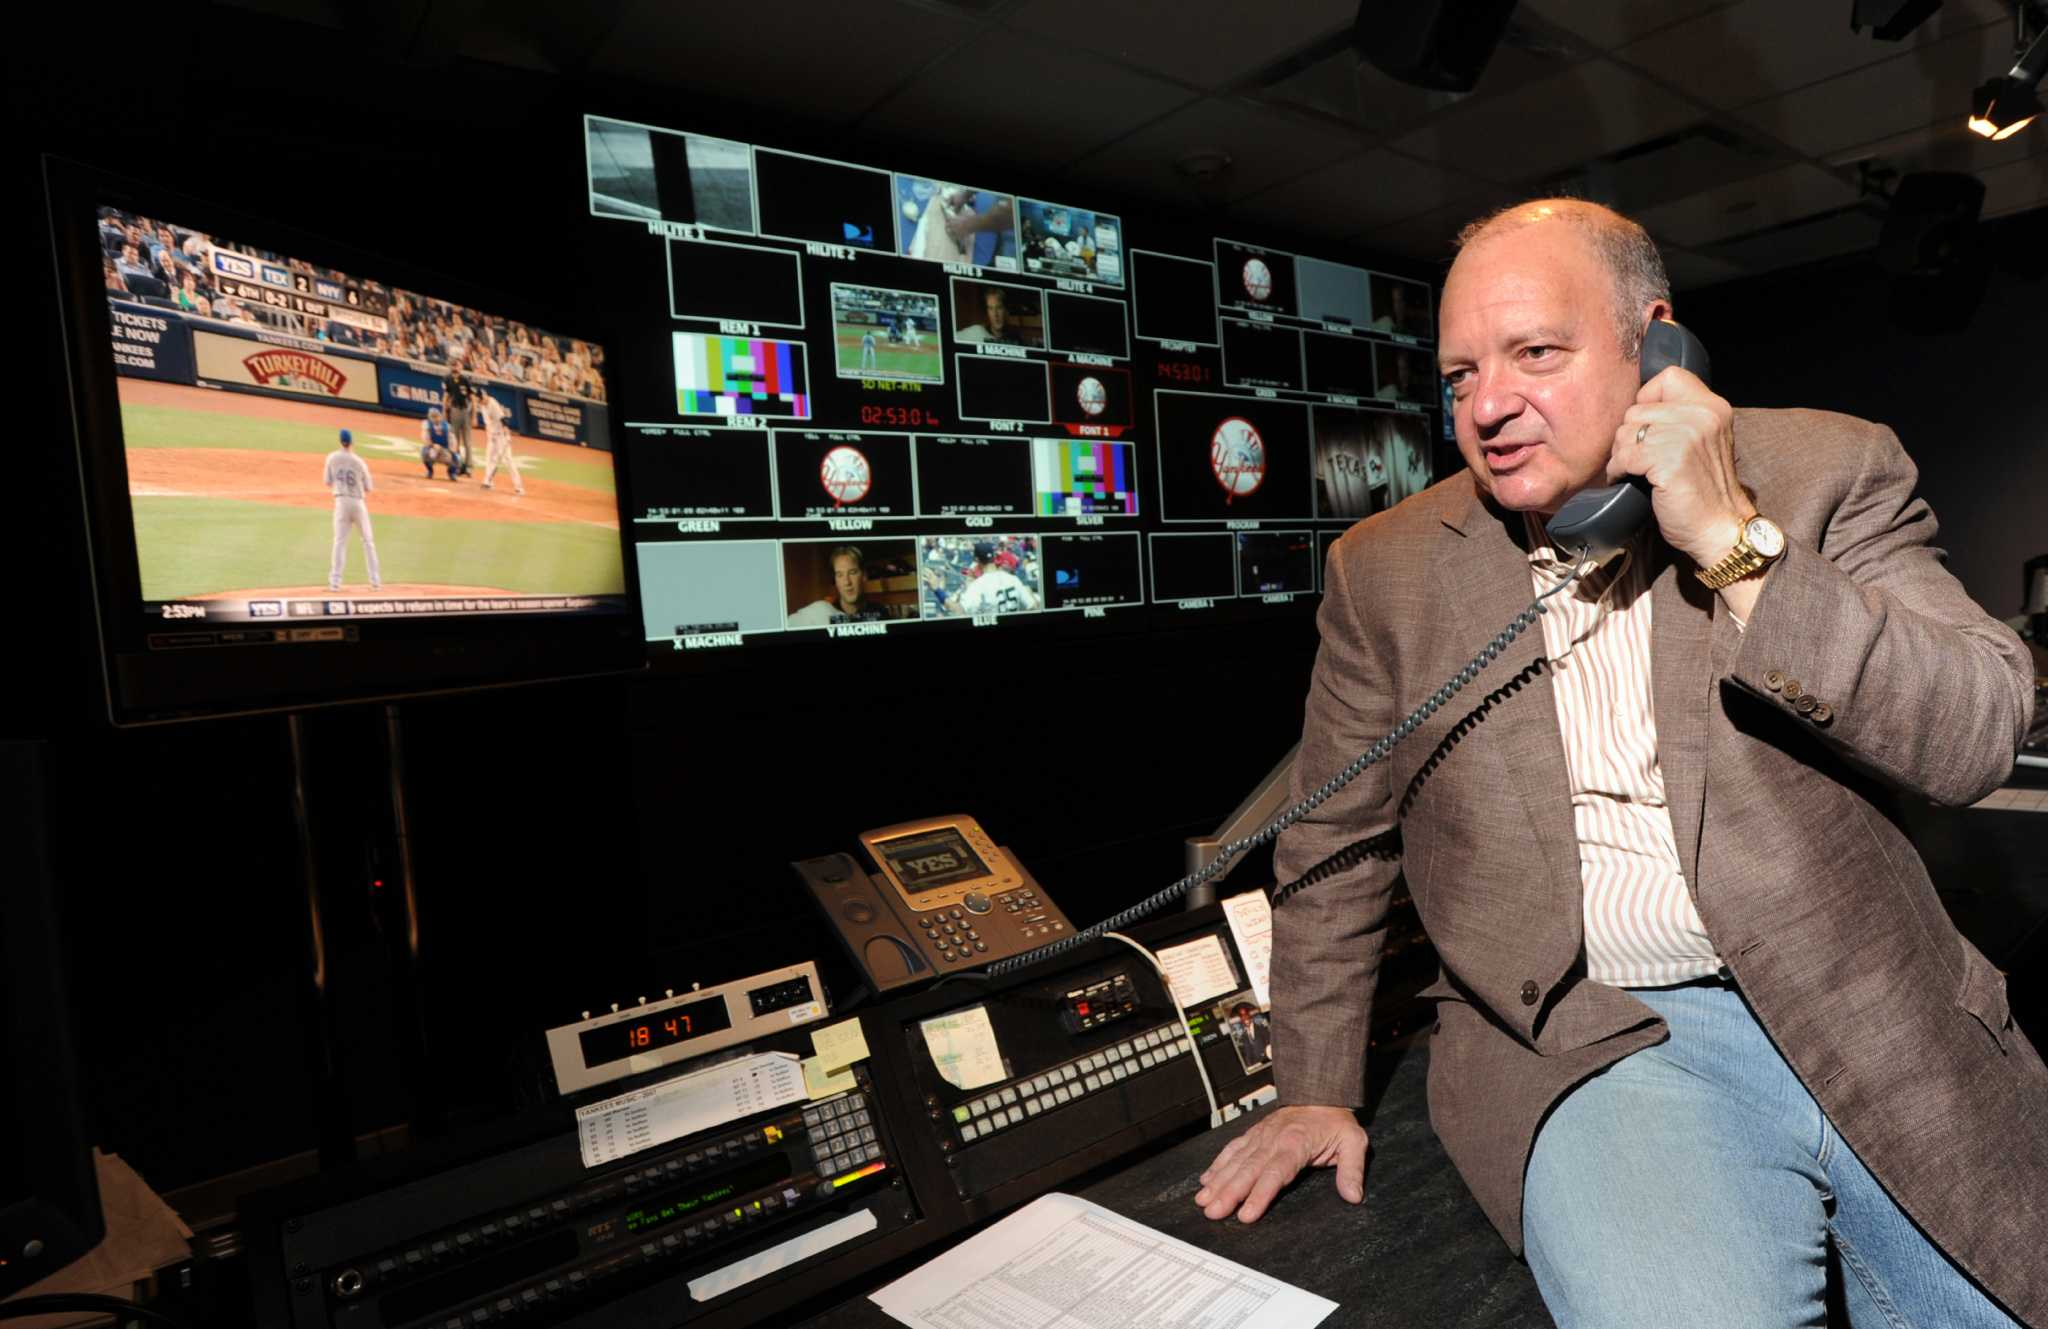 a connecticut yankee: john filippelli helps build yes into tv